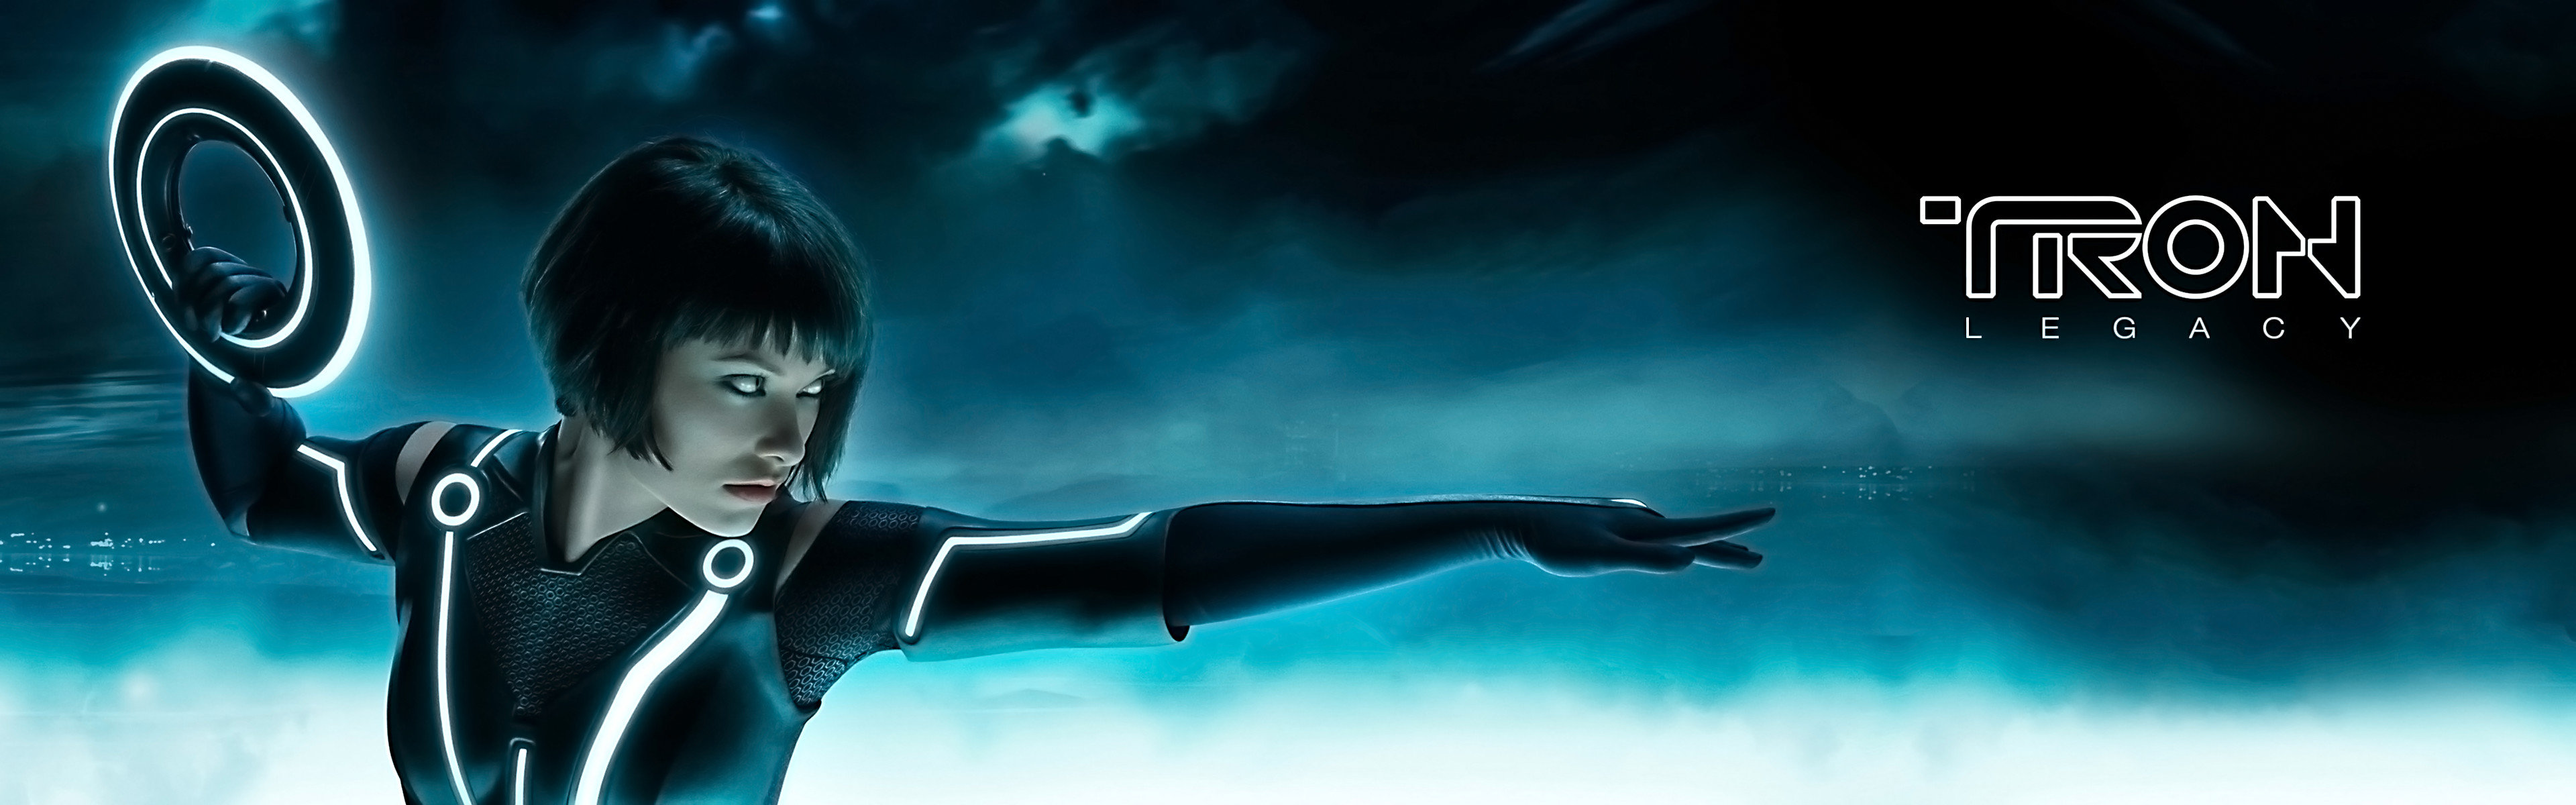 High resolution TRON: Legacy dual screen 3840x1200 wallpaper ID:379616 for computer